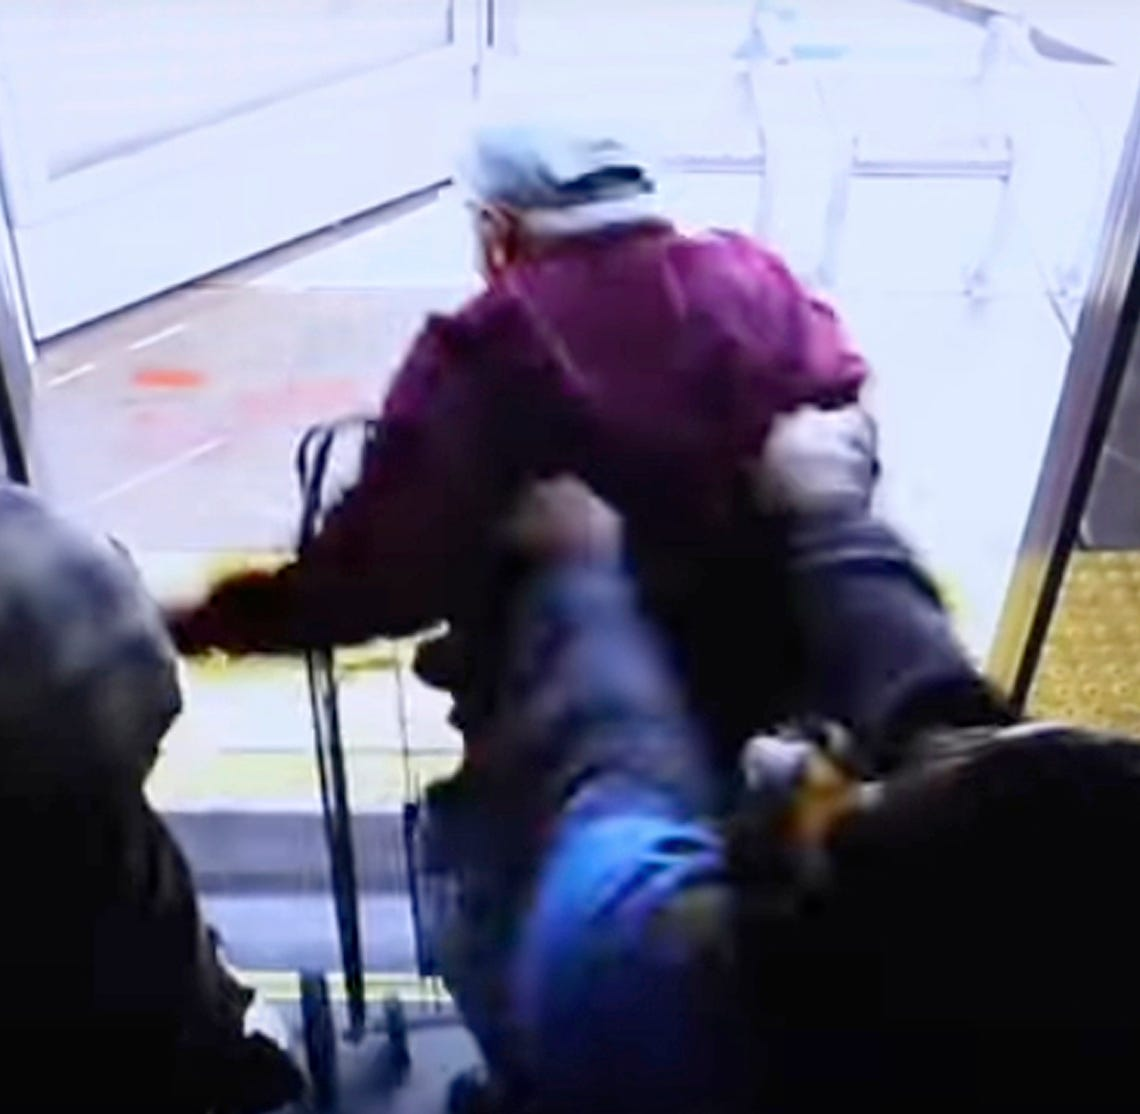 In this still image taken from security video and provided by the Las Vegas Metropolitan Police Department, a woman shoves a 74-year-old man off a public transit bus on March 21, 2019. The man, Serge Fournier, hit his head on the sidewalk and died a month later. The Clark County coroner ruled his death a homicide resulting from his injuries. Cadesha Michelle Bishop was arrested Monday, May 13, 2019, and is scheduled to appear in court on May 21.